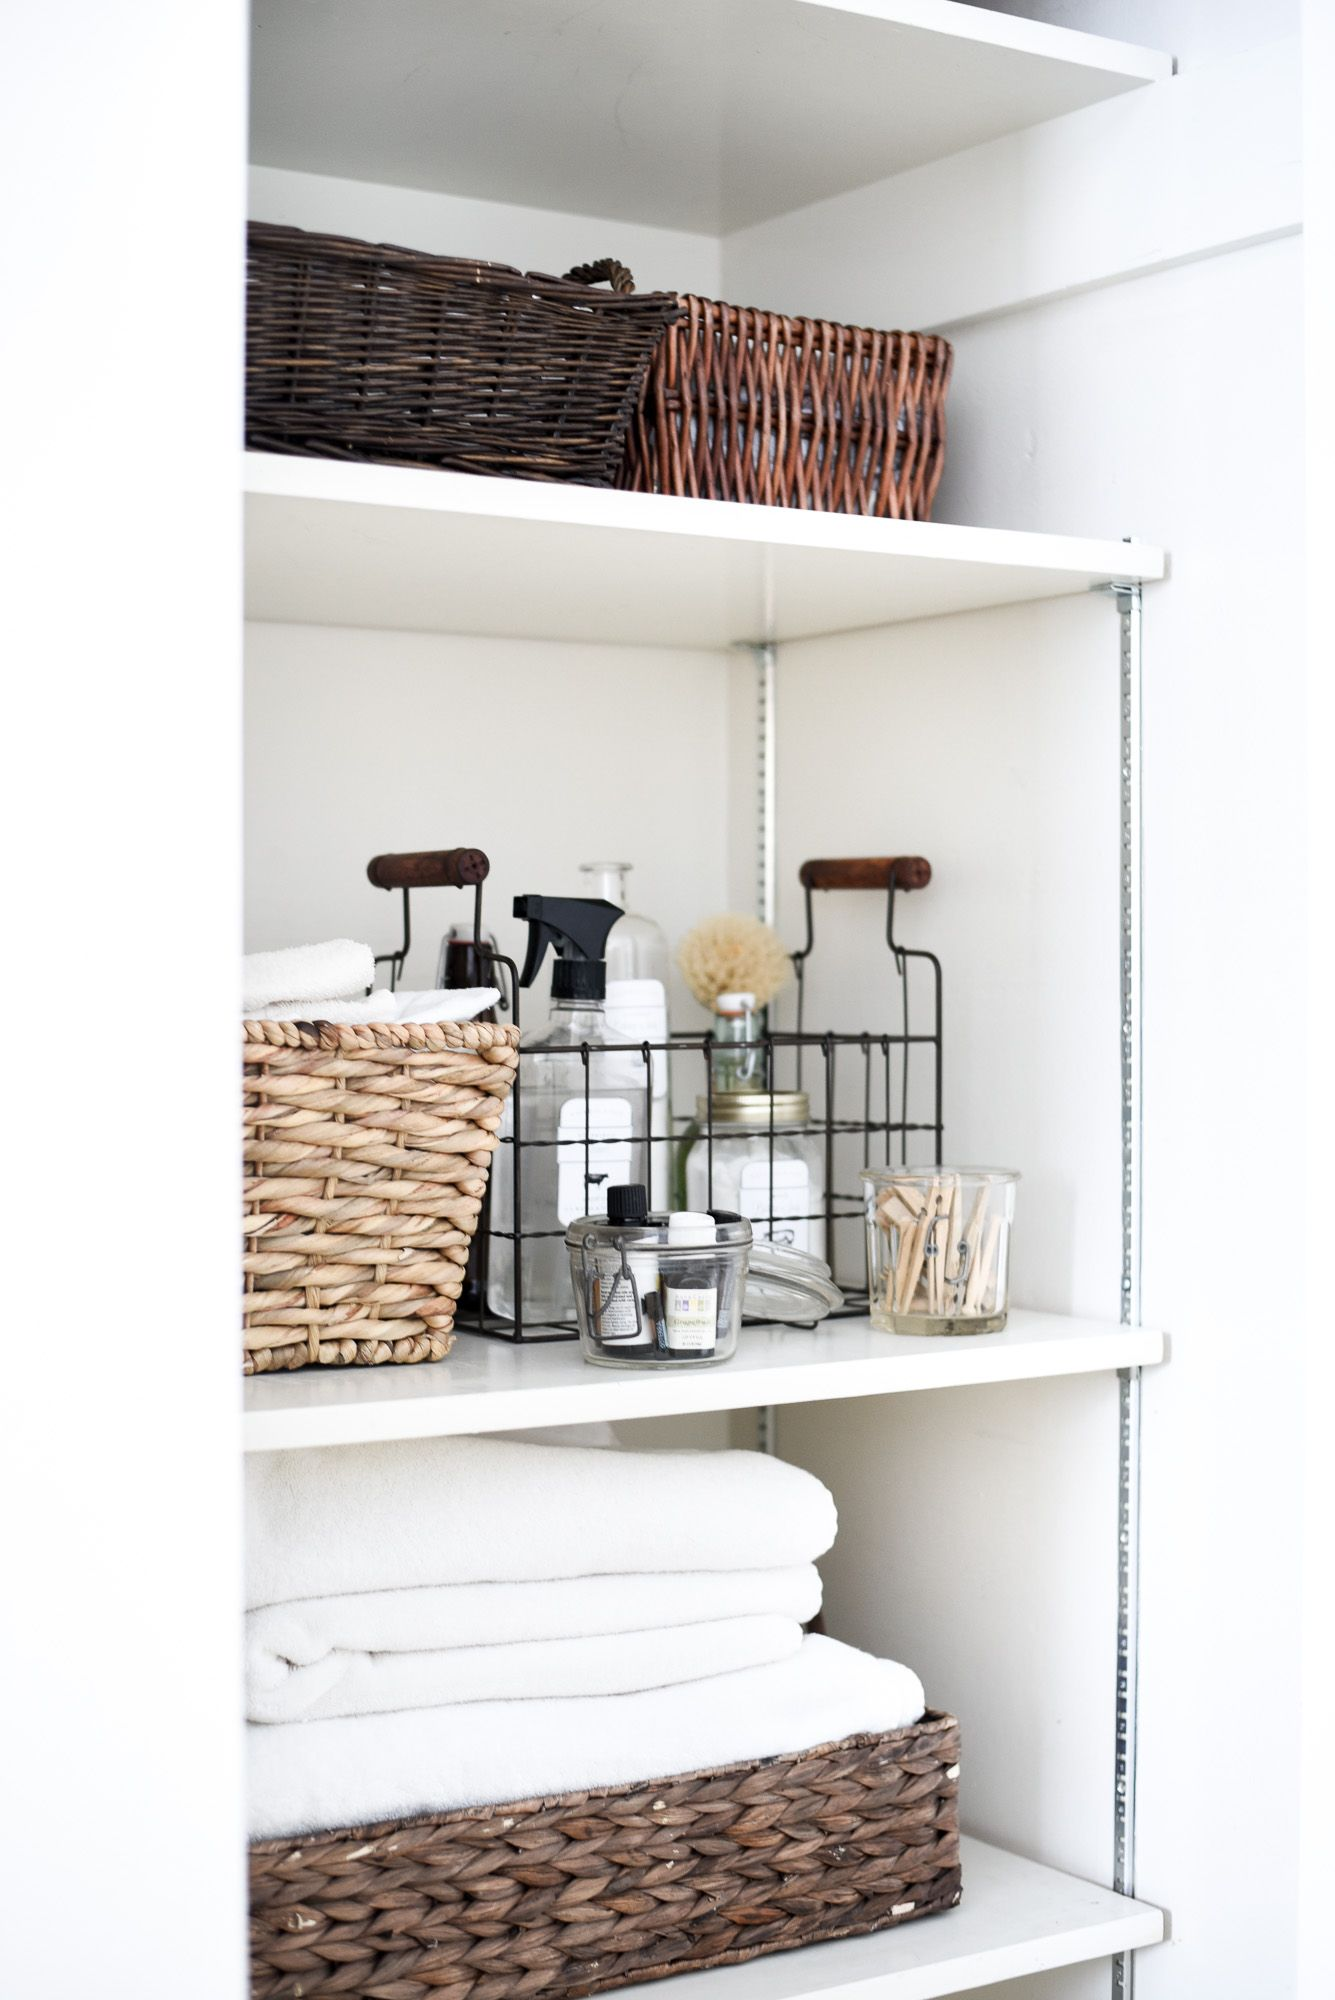 Badezimmerschrank Organisieren How To Organize A Closet In 30 Minutes Tips For Organizing